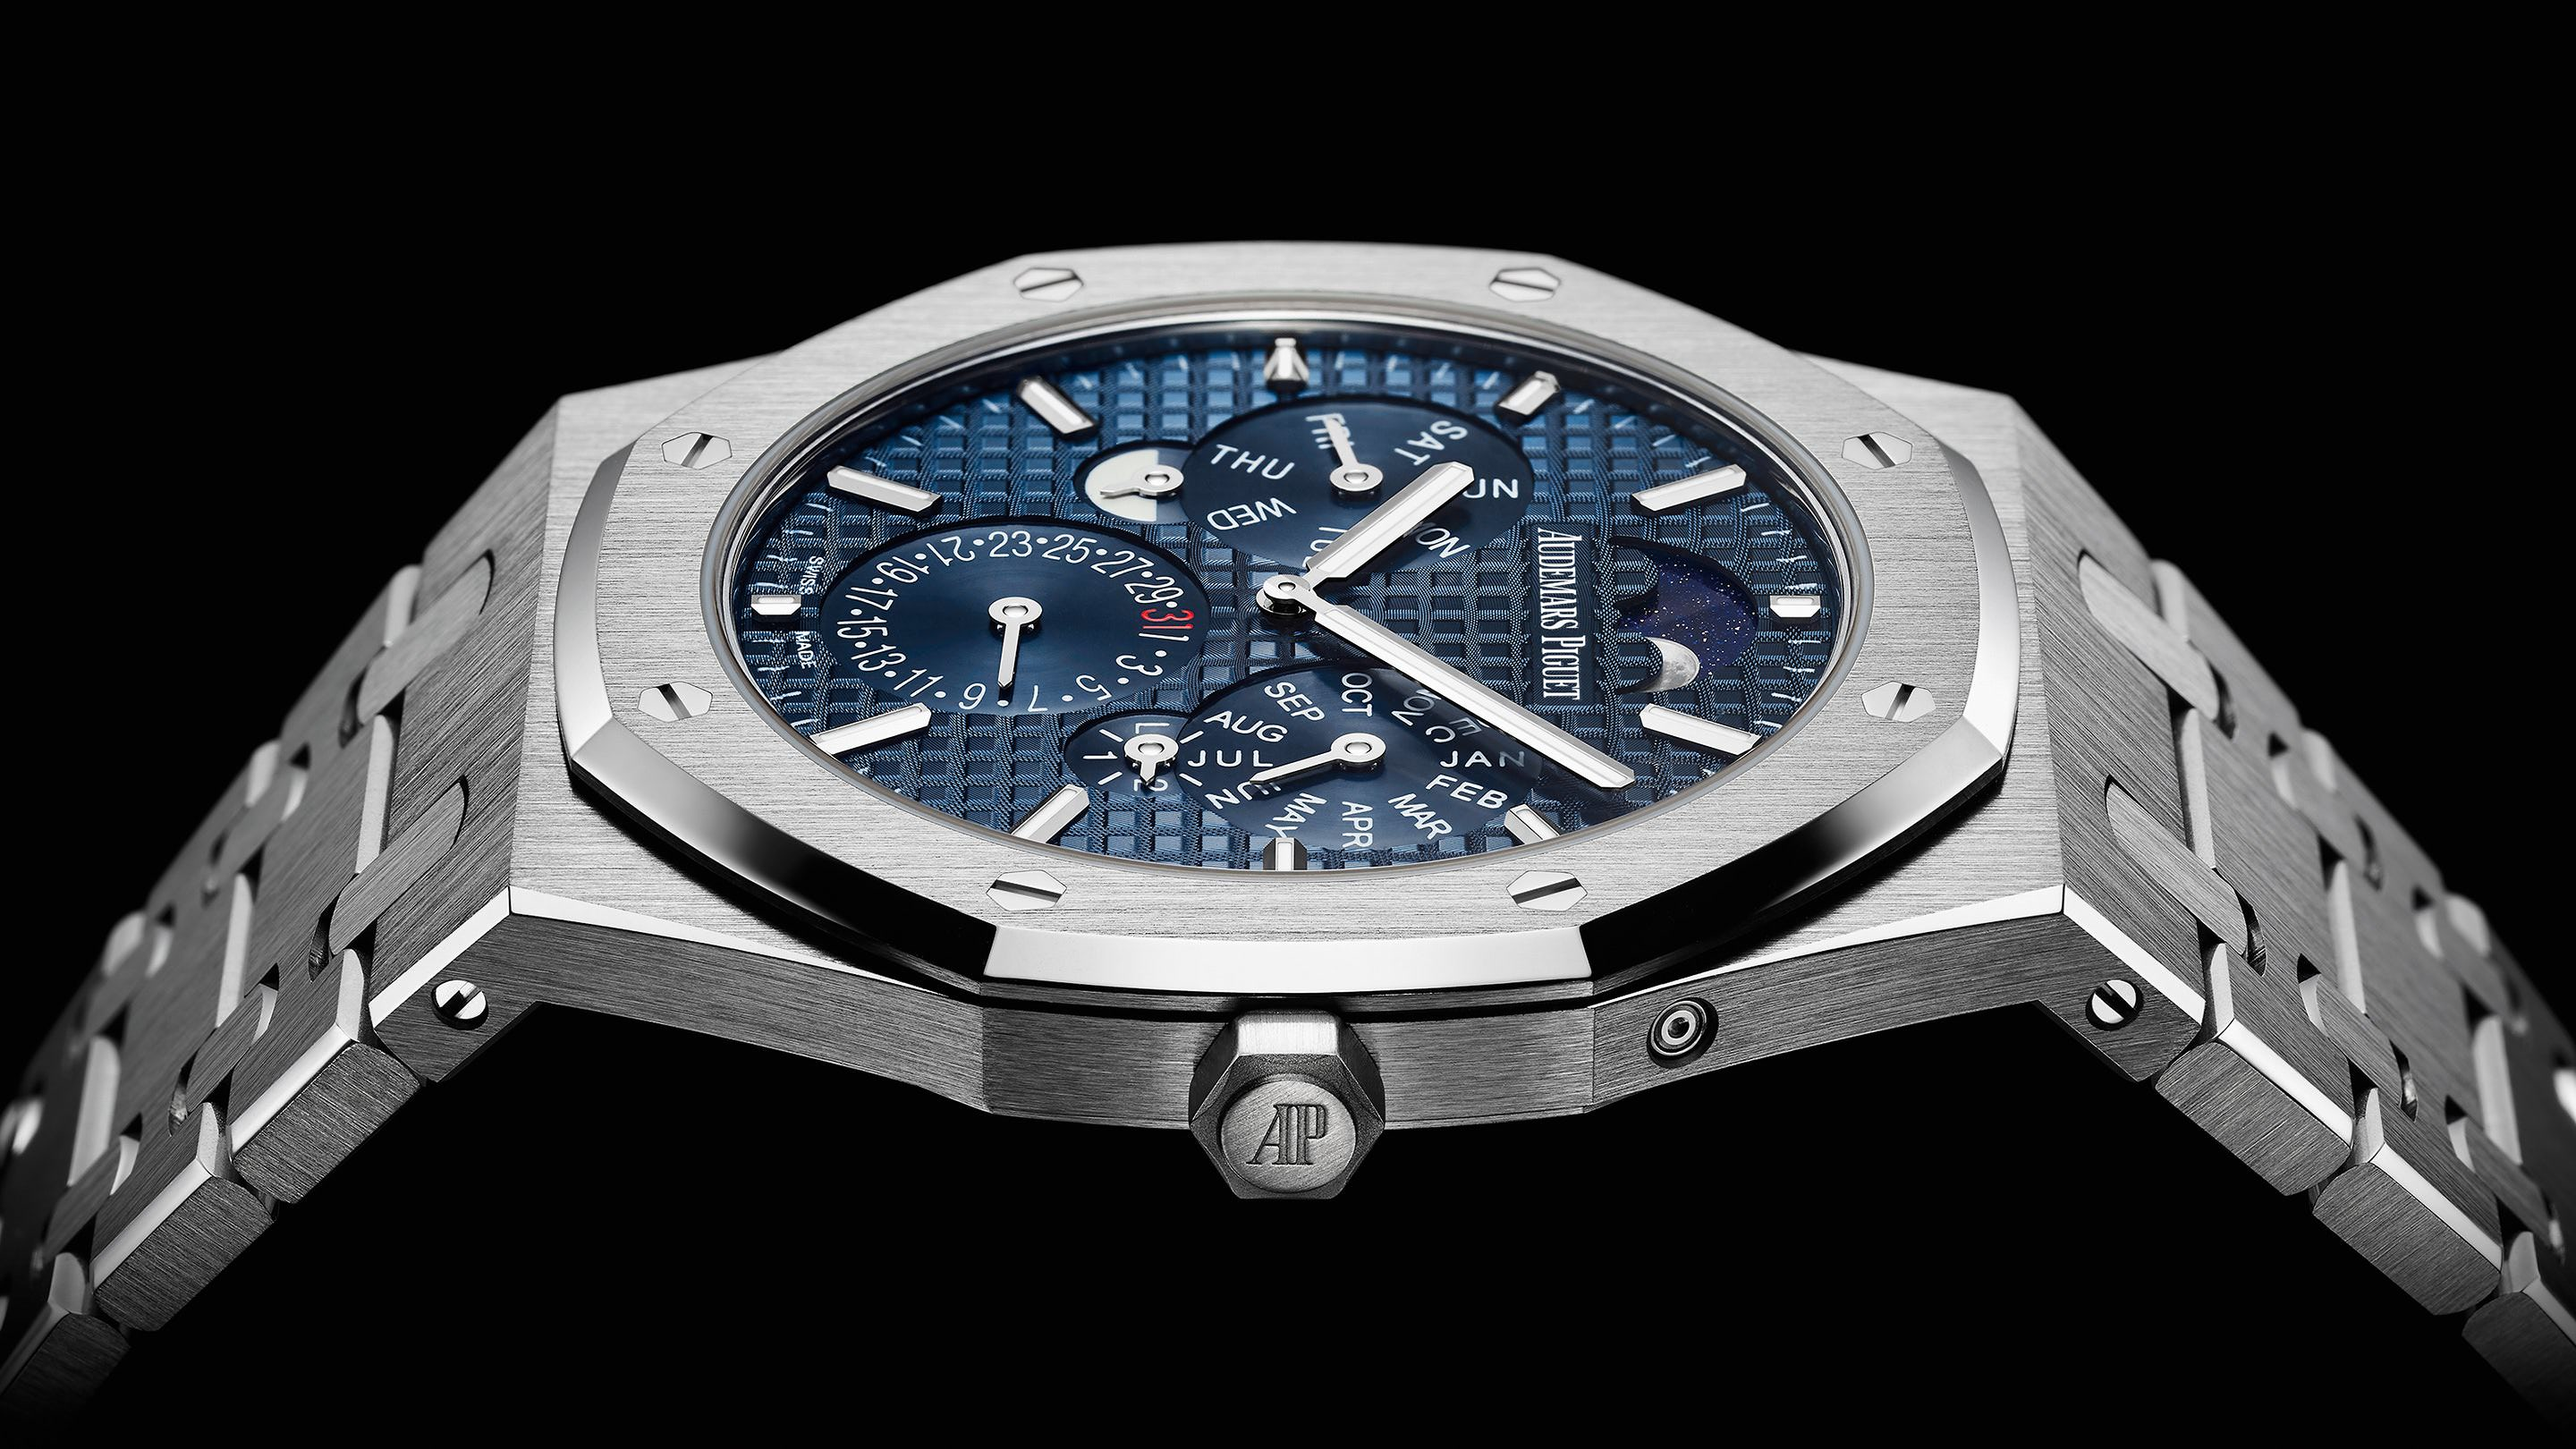 Royal Oak RD#2 Perpetual Calendar Ultra-Thin